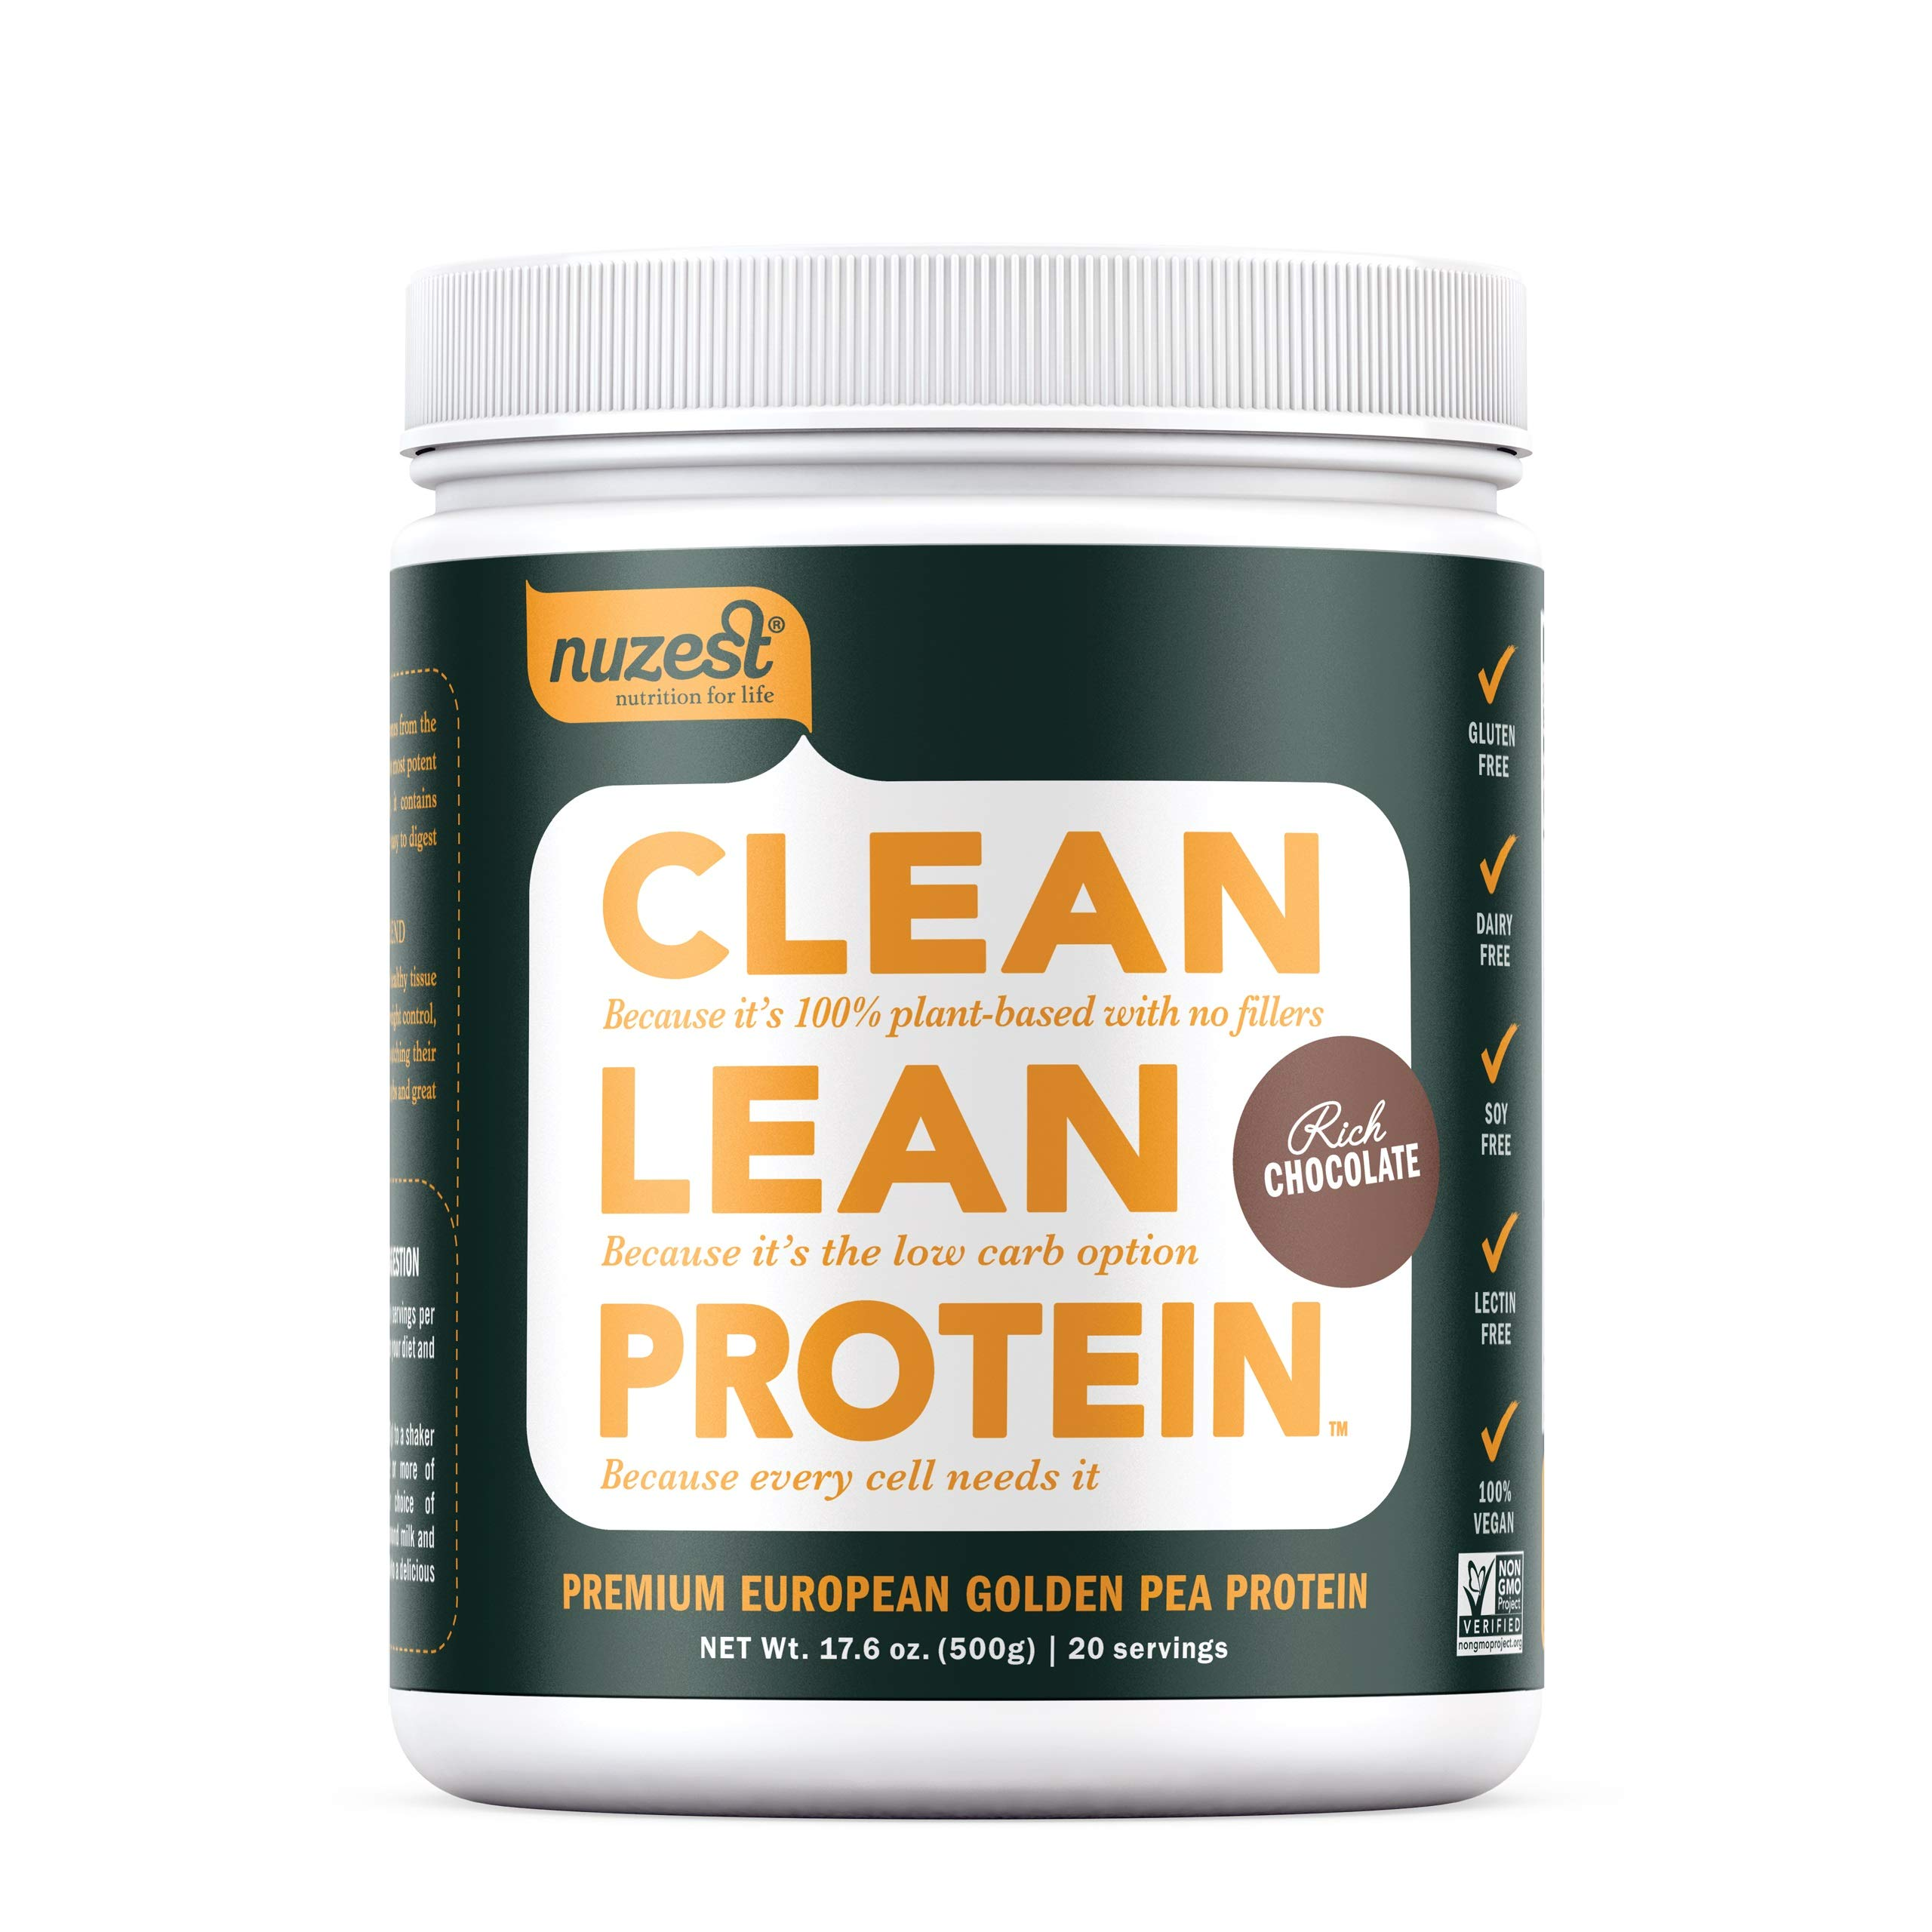 Nuzest Clean Lean Protein - Premium Vegan Protein Powder, Plant Protein Powder, European Golden Pea Protein, Dairy Free, Gluten Free, GMO Free, Naturally Sweetened, Rich Chocolate, 20 Servings, 1.1 lb by NuZest